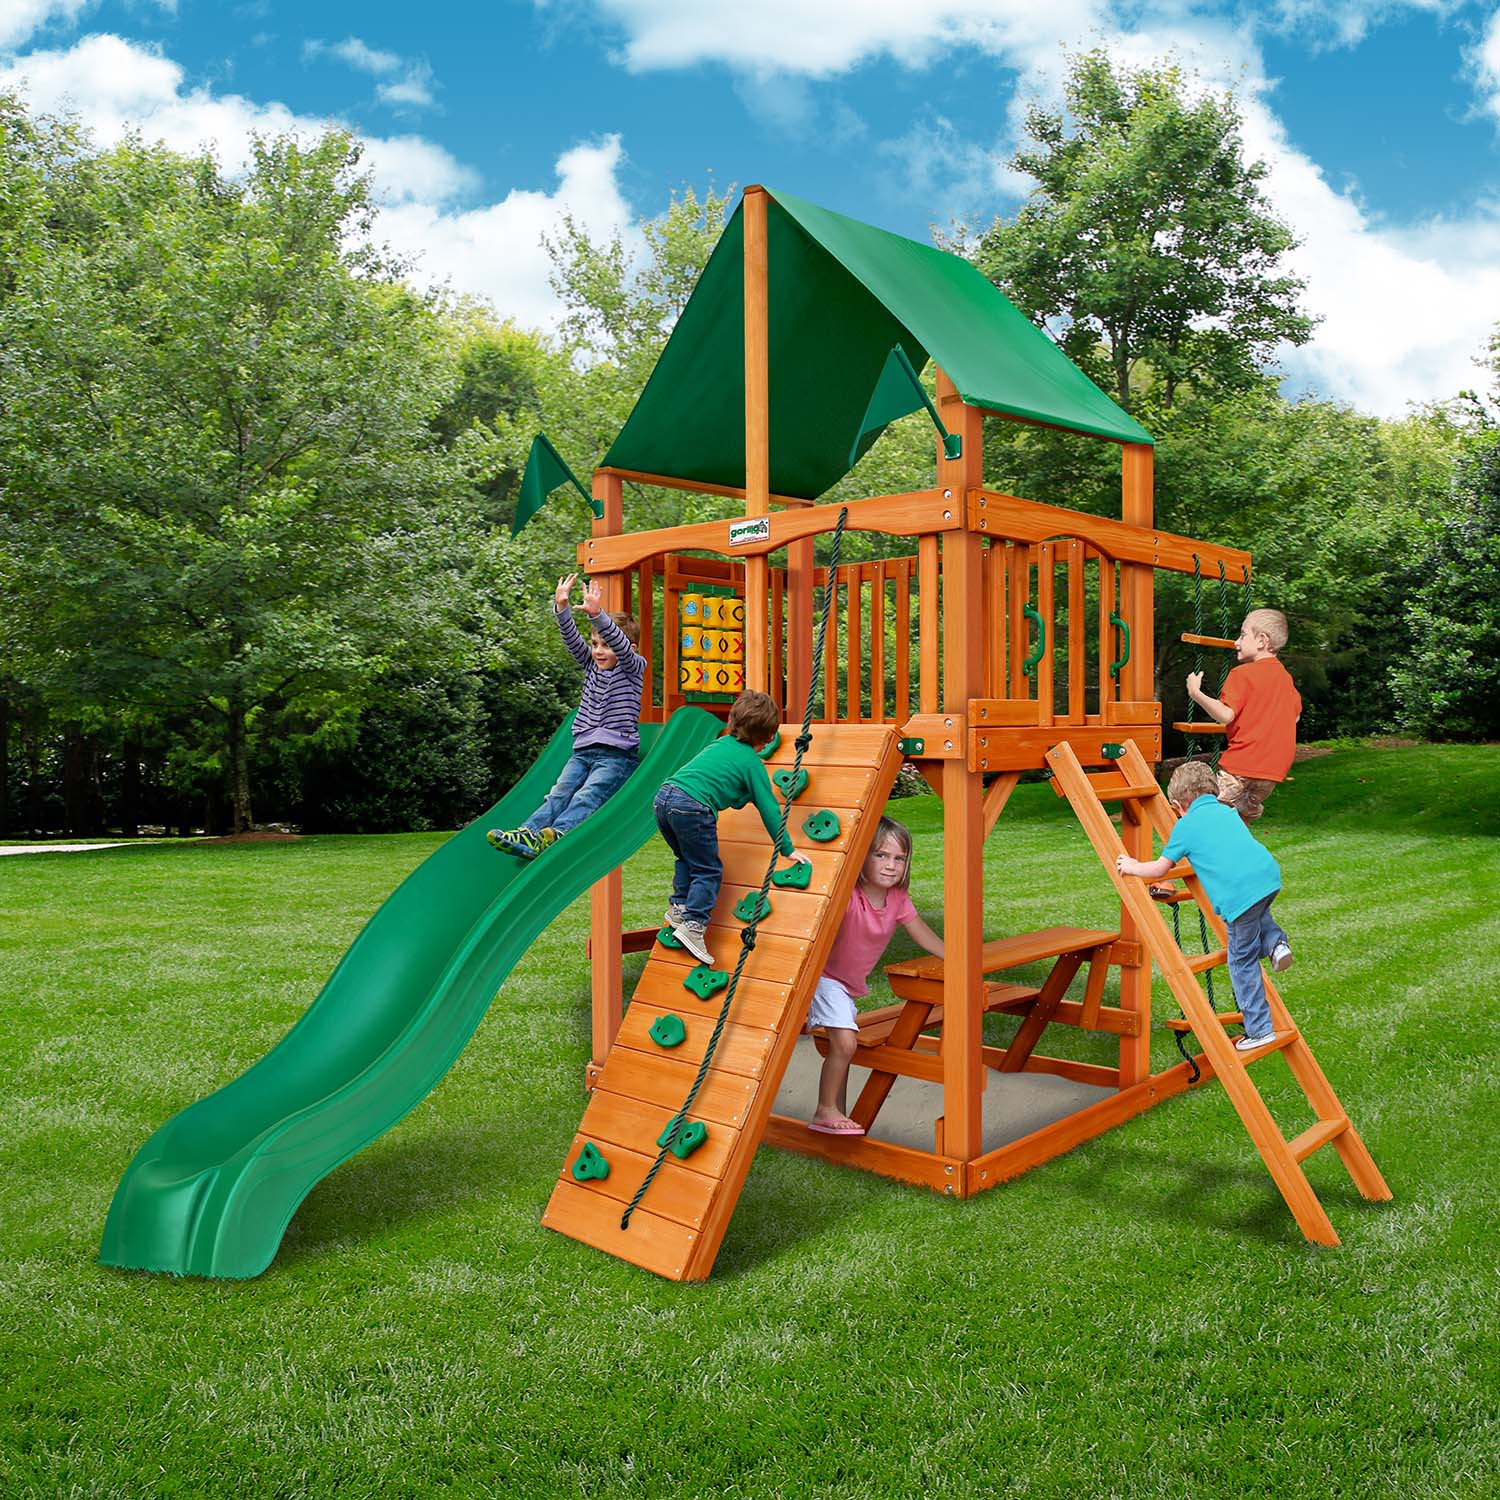 Gorilla Playsets Chateau Tower Deluxe Wooden Swing Set Nj Swingsets